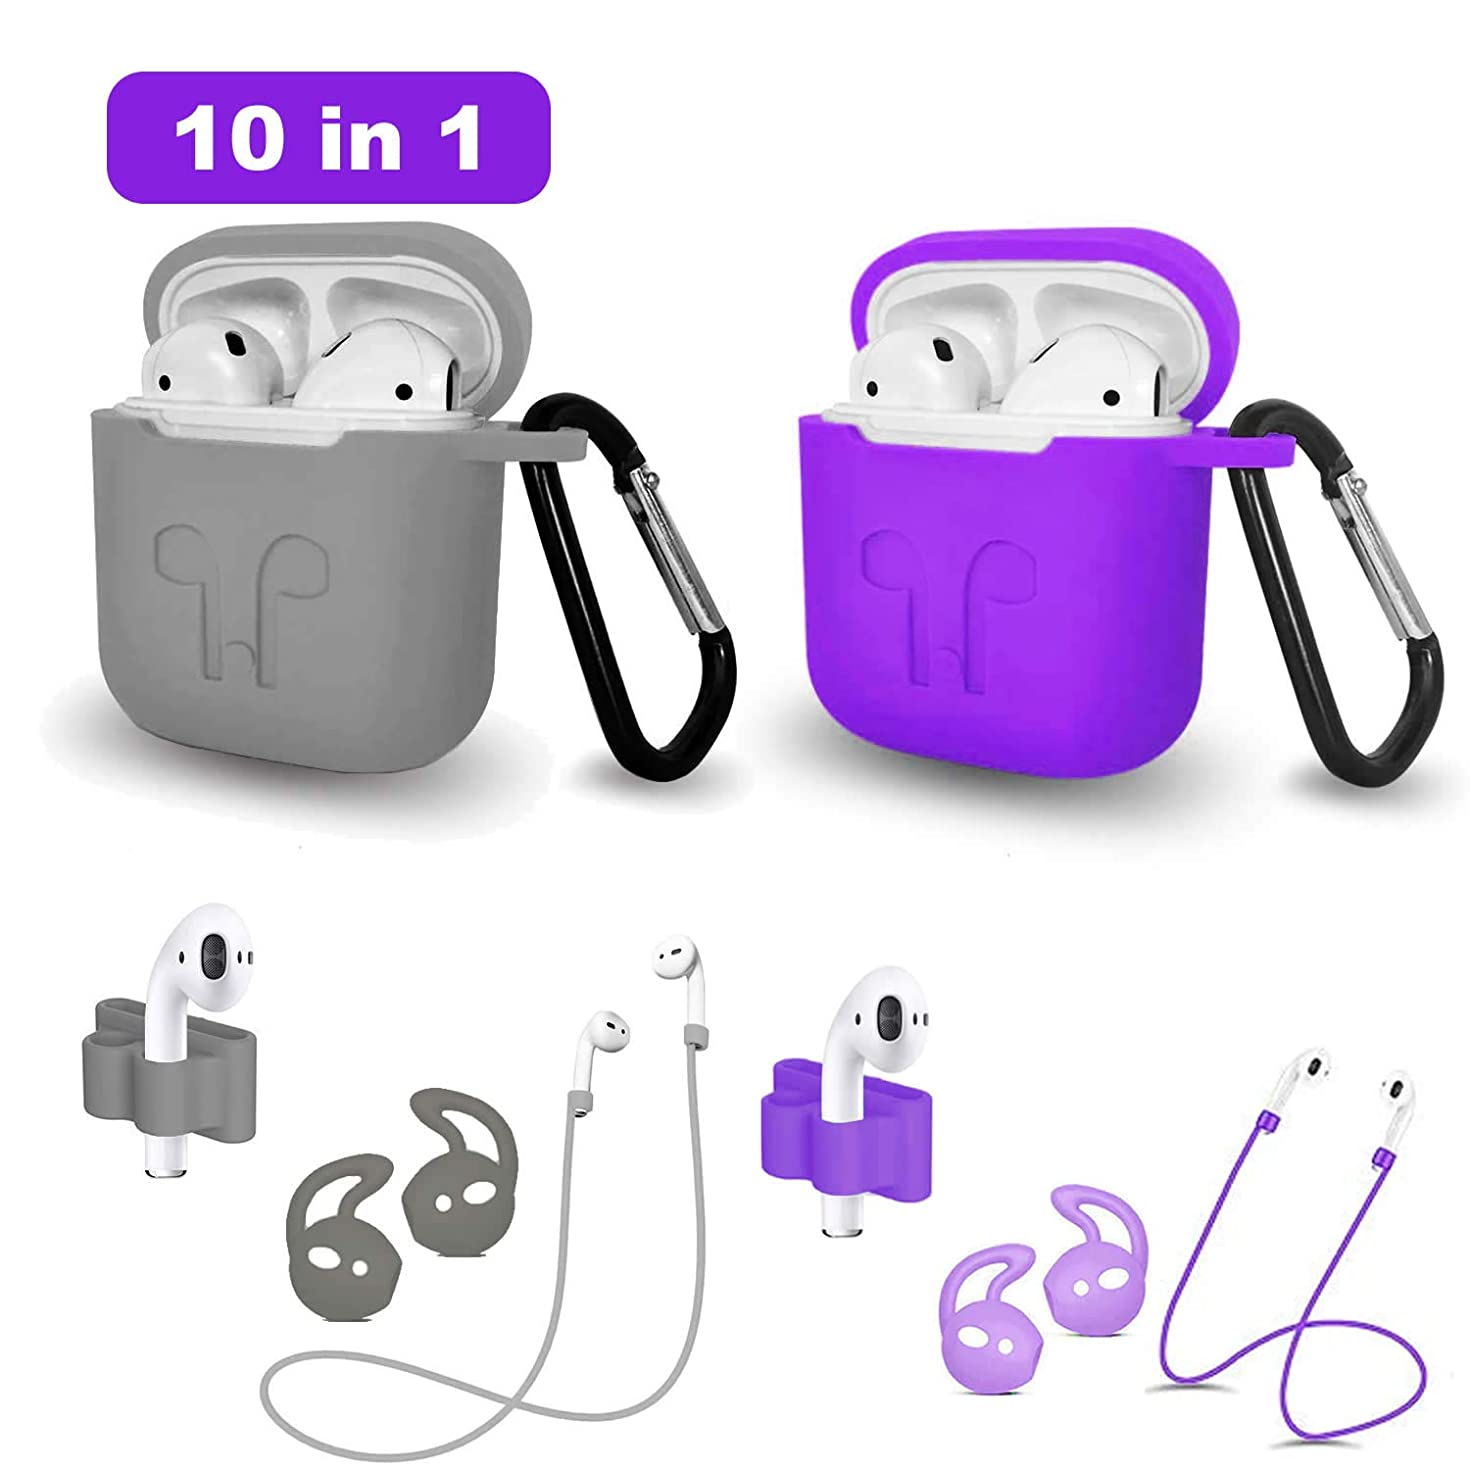 Airpods Case, Airpods Accessories Kits, 11 in 1 Protective Silicone Cover Skin Apple Airpods Anti-Lost Airpods Strap, Airpods Watch Band Holder, Airpods Ear Hook (Purple and Gray)